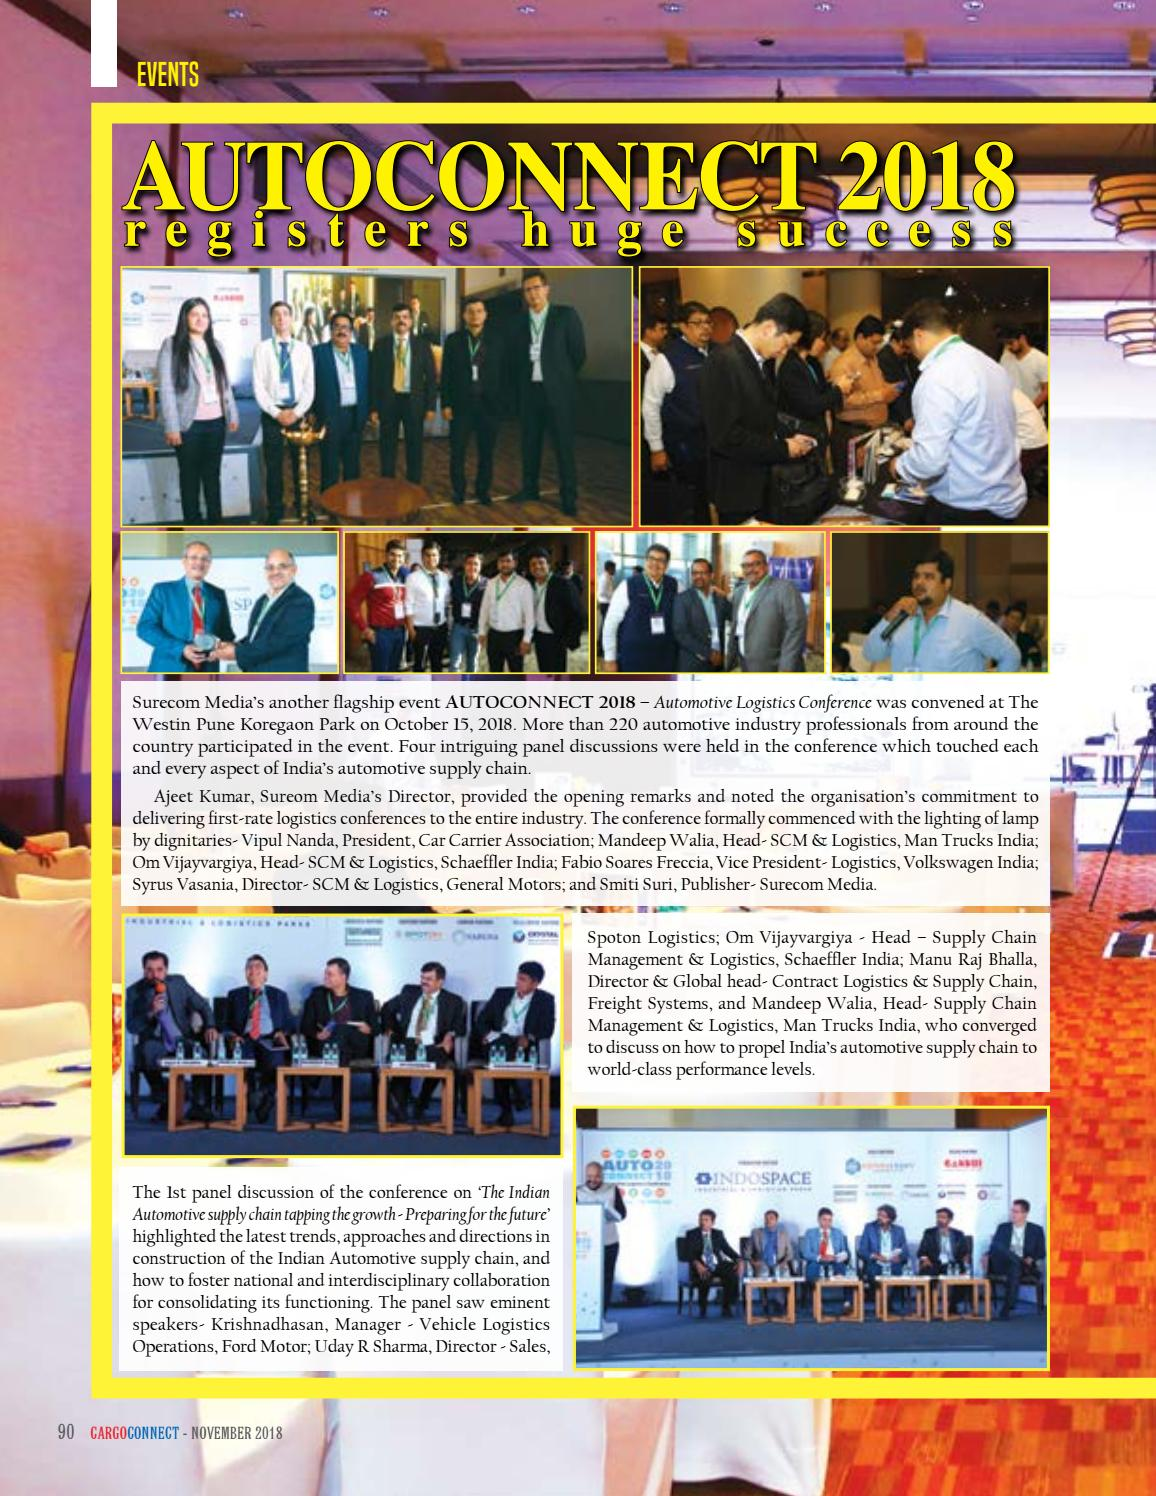 CARGOCONNECT November issue 2018 by Surecom Media - issuu